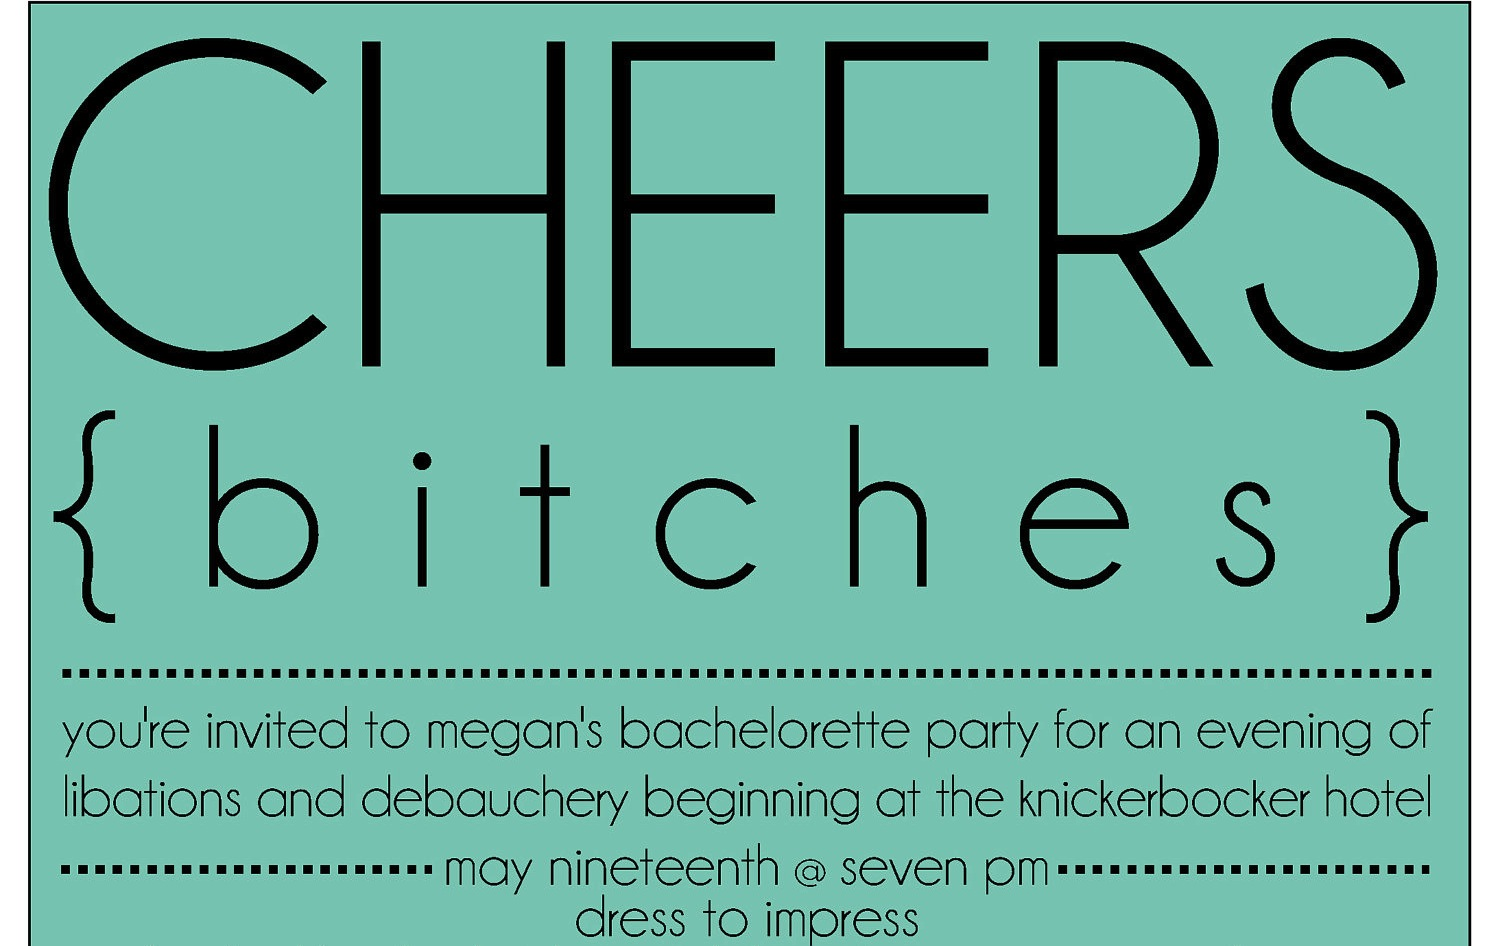 funny-wedding-invitations-pre-wedding-invites-bachelorette-party    Funny Cocktail Party Invitations